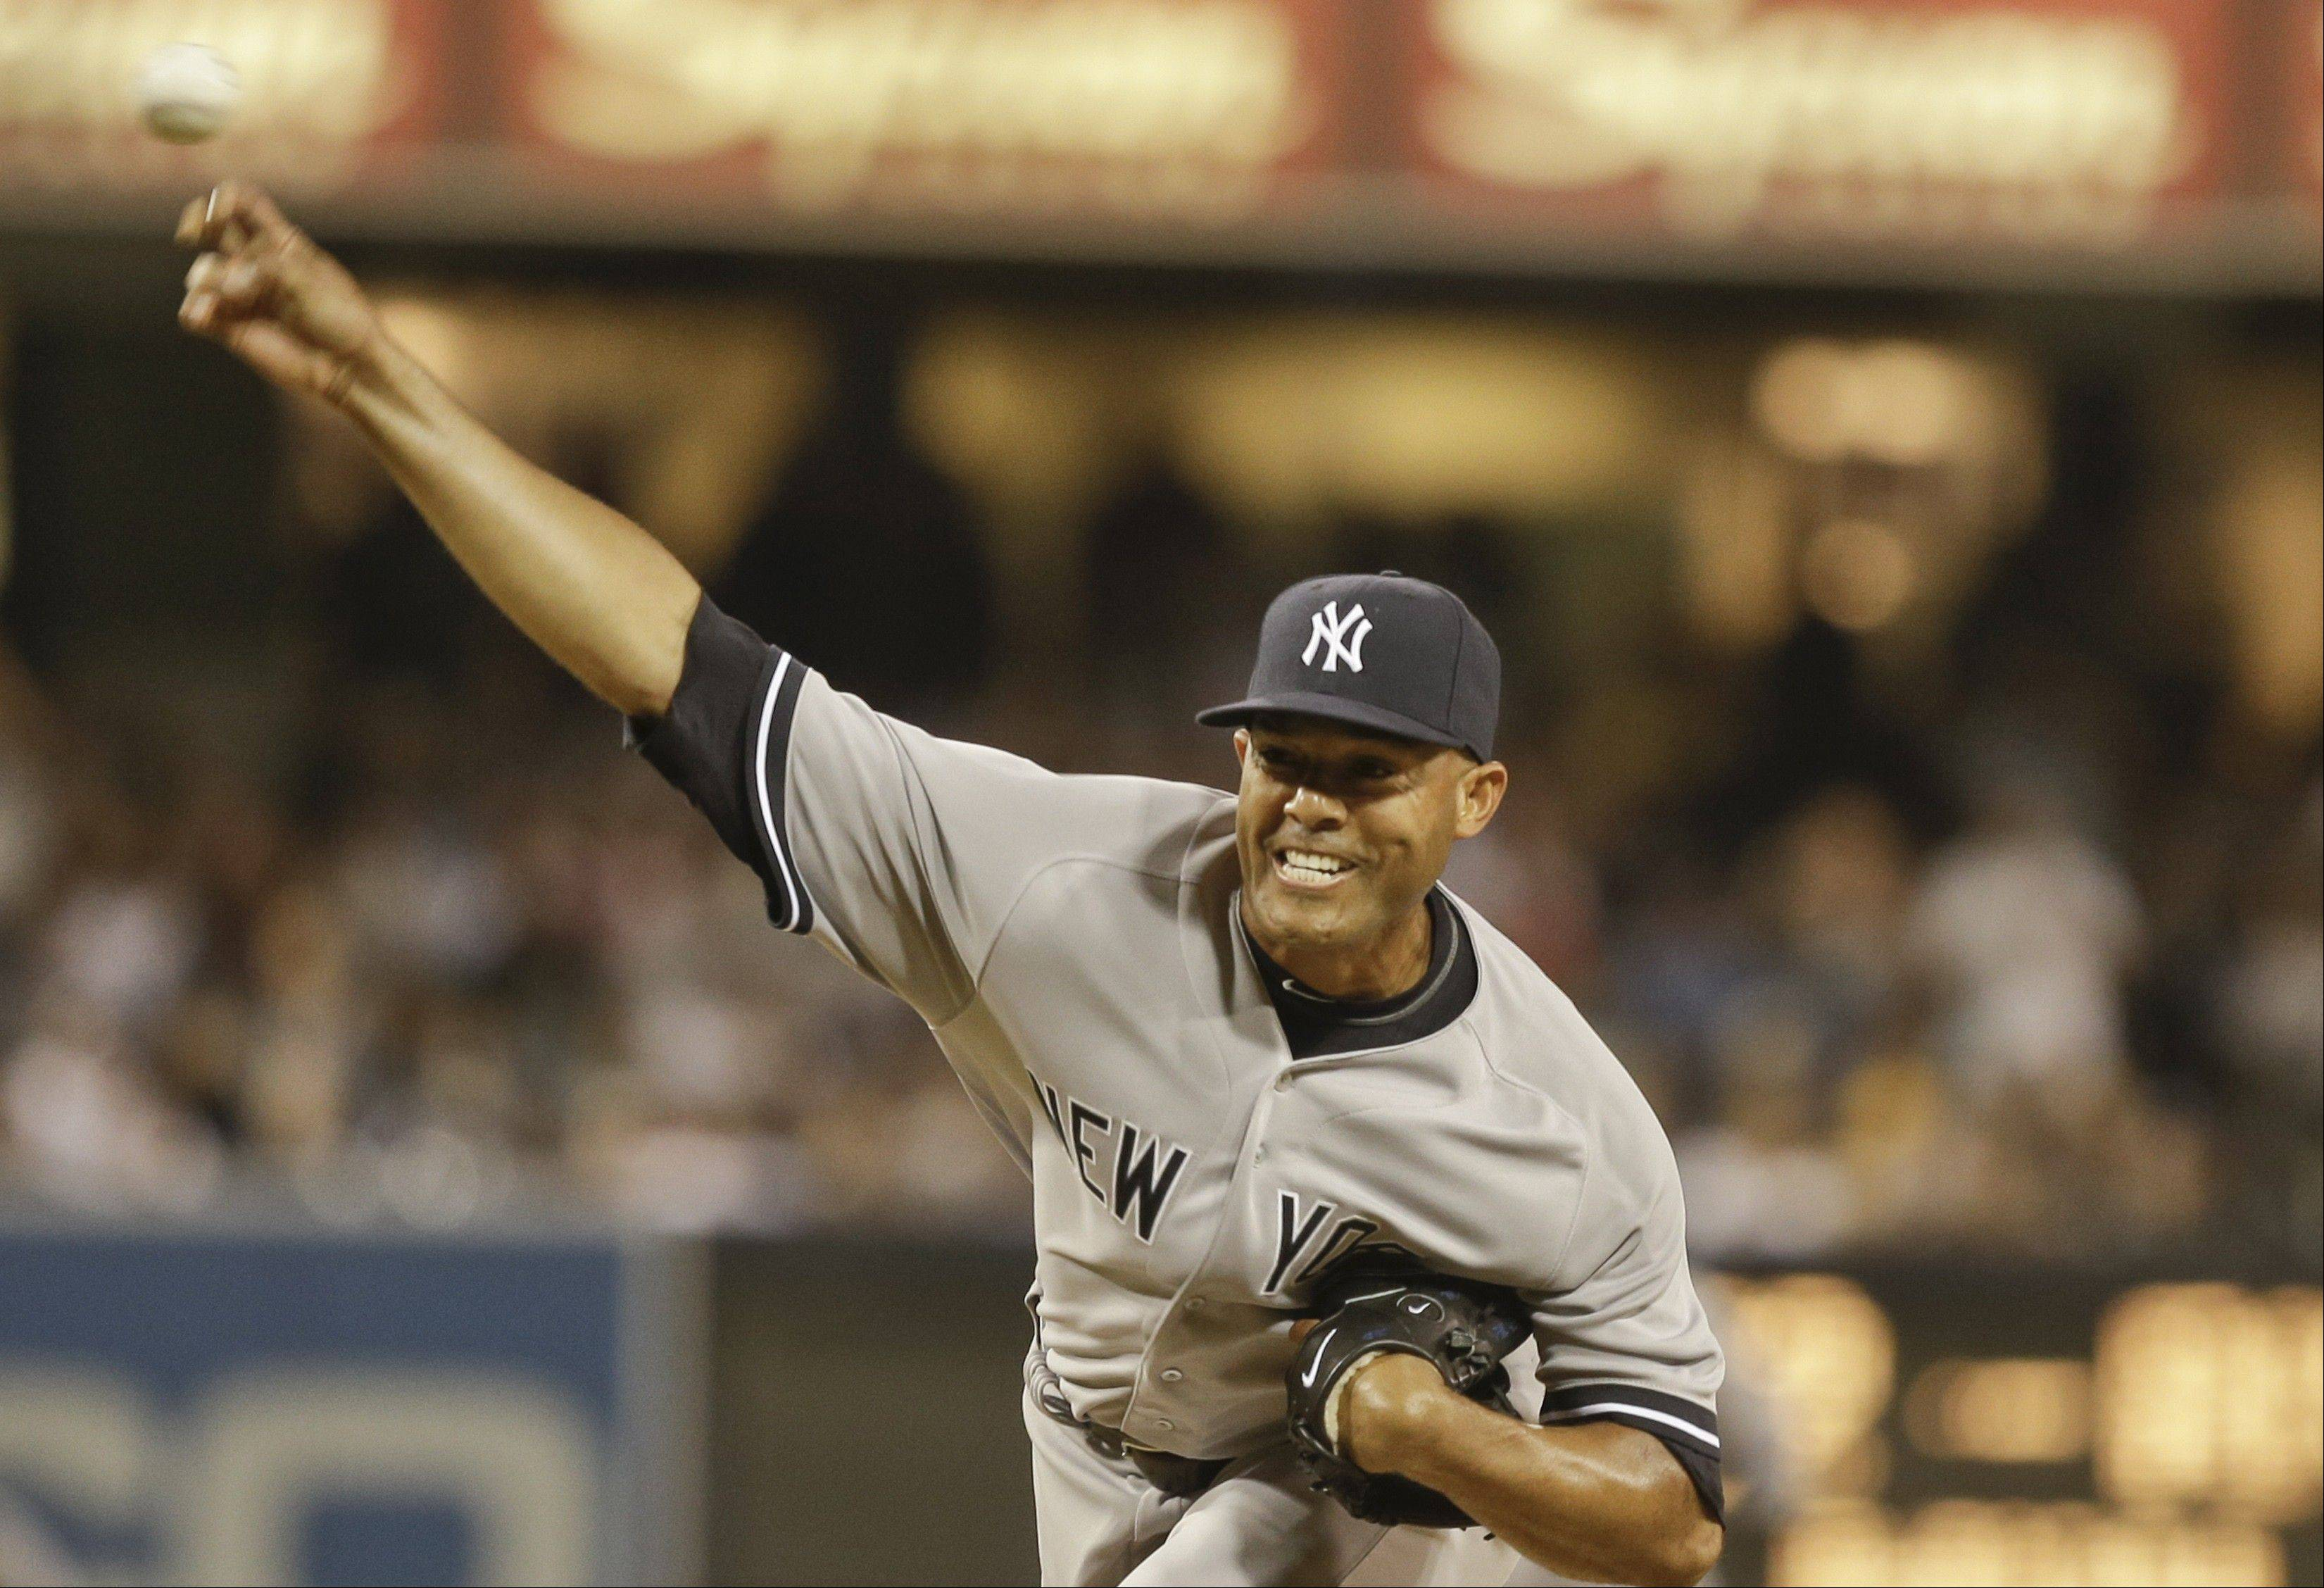 When it comes to a sports figure to look up to, New York Yankees closer Mariano Rivera is a good choice.